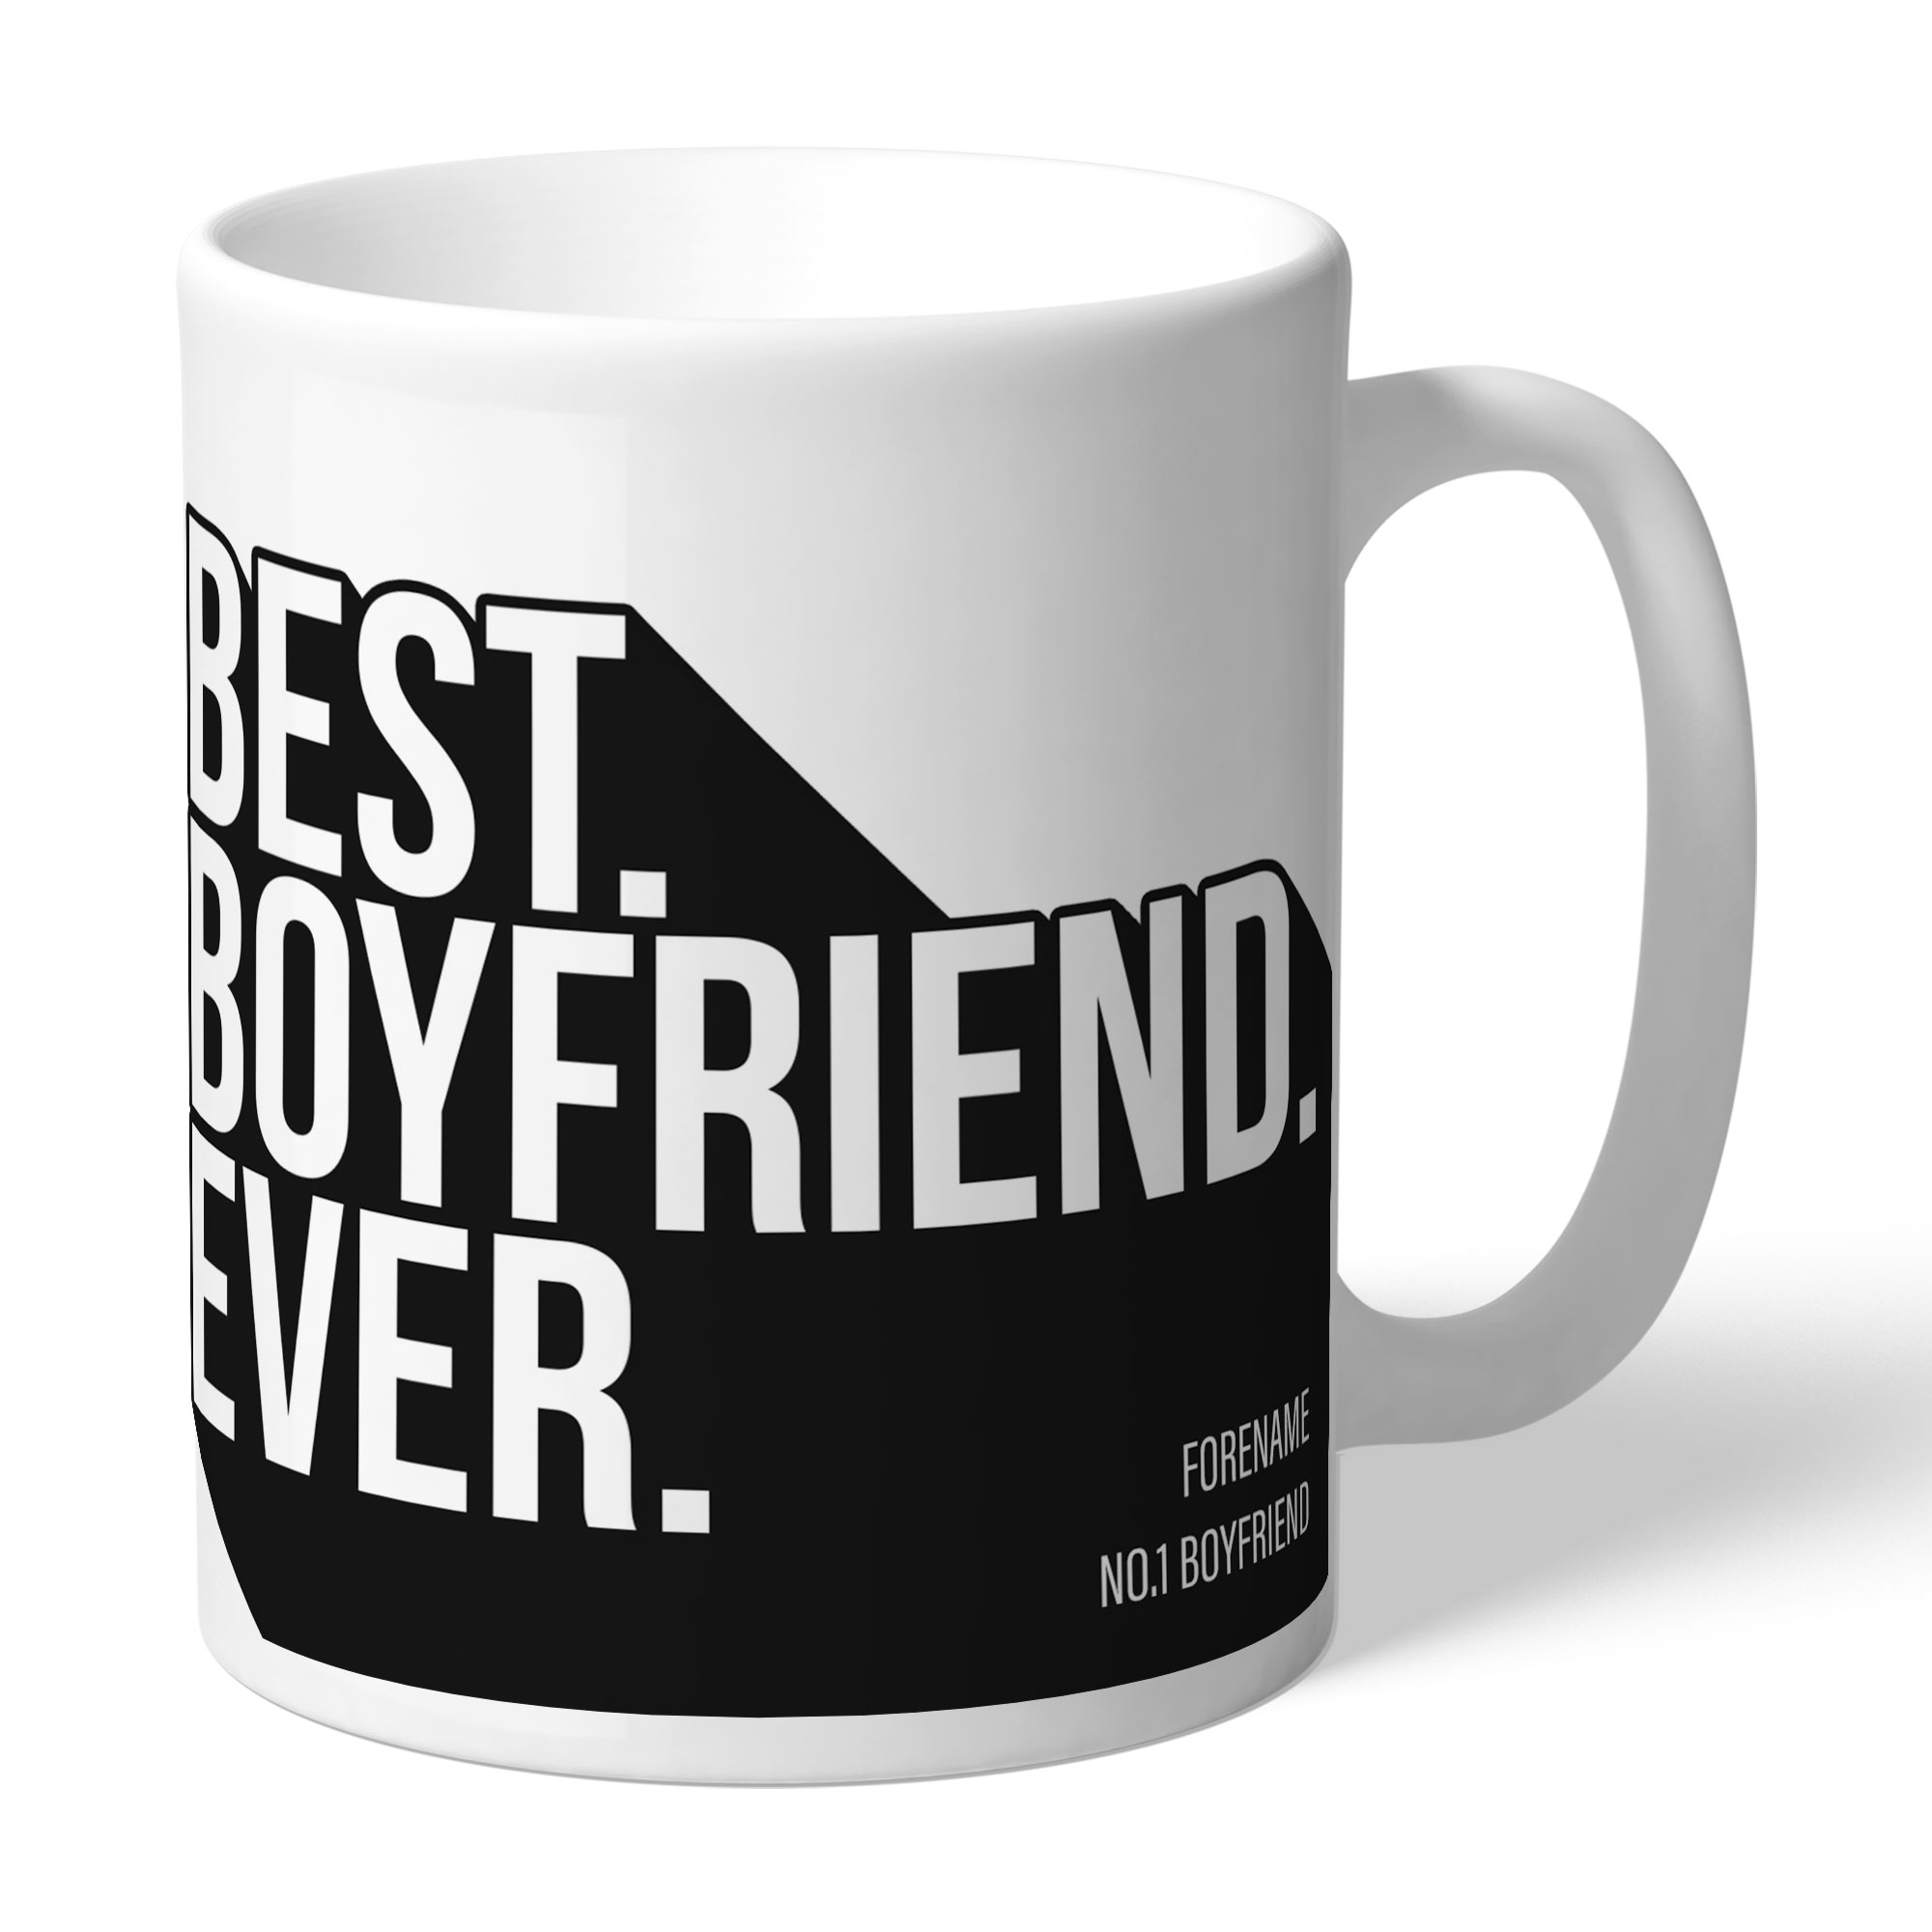 Swansea City AFC Best Boyfriend Ever Mug